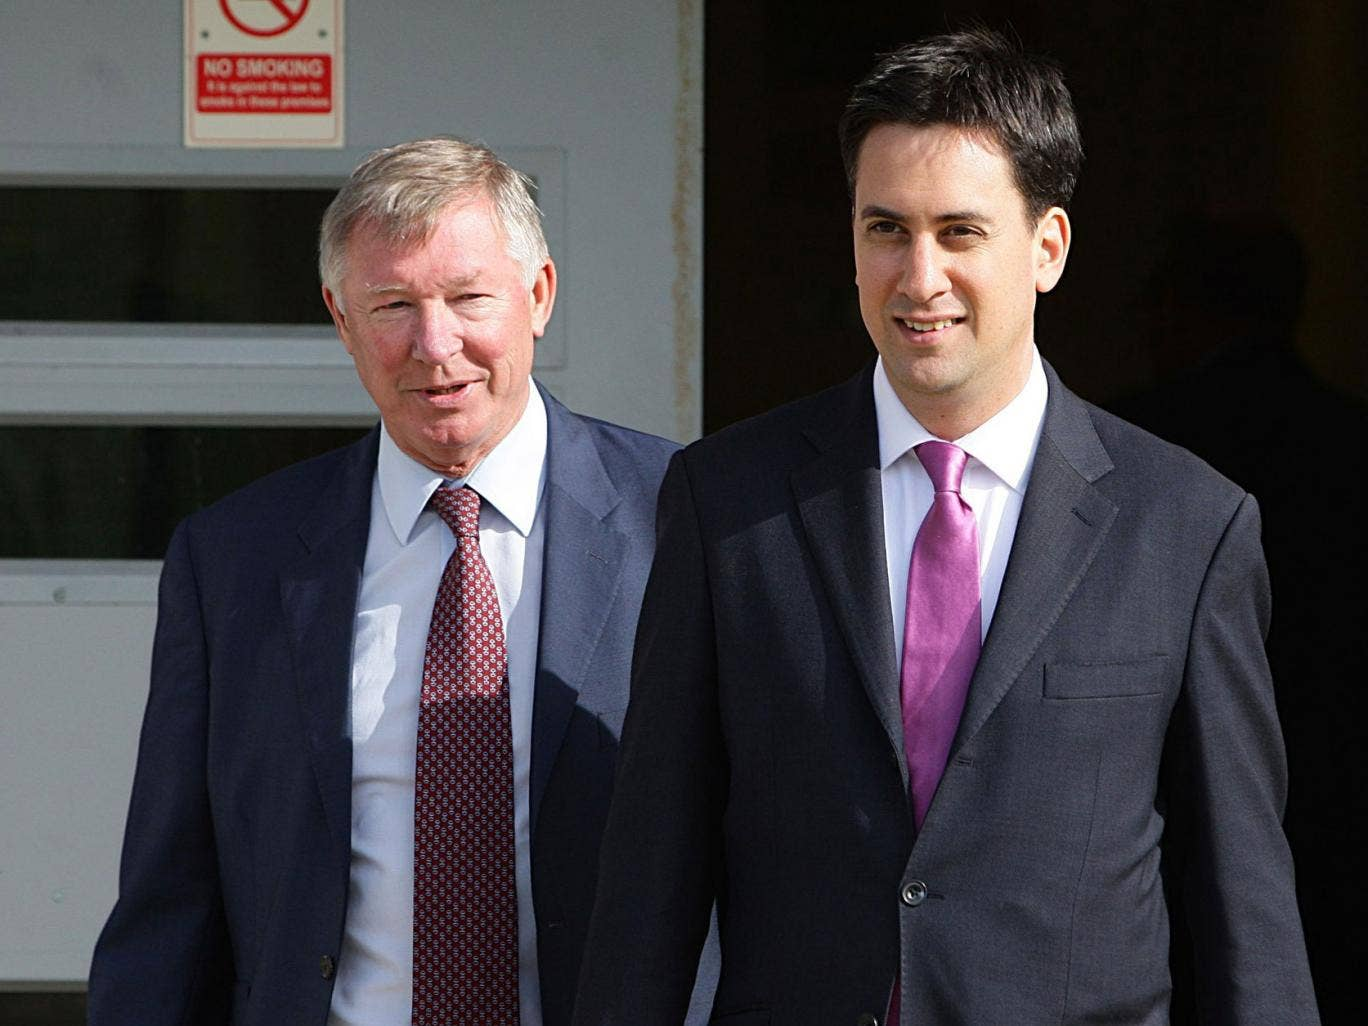 Alex Ferguson and Ed Miliband at Manchester United's training ground in 2010